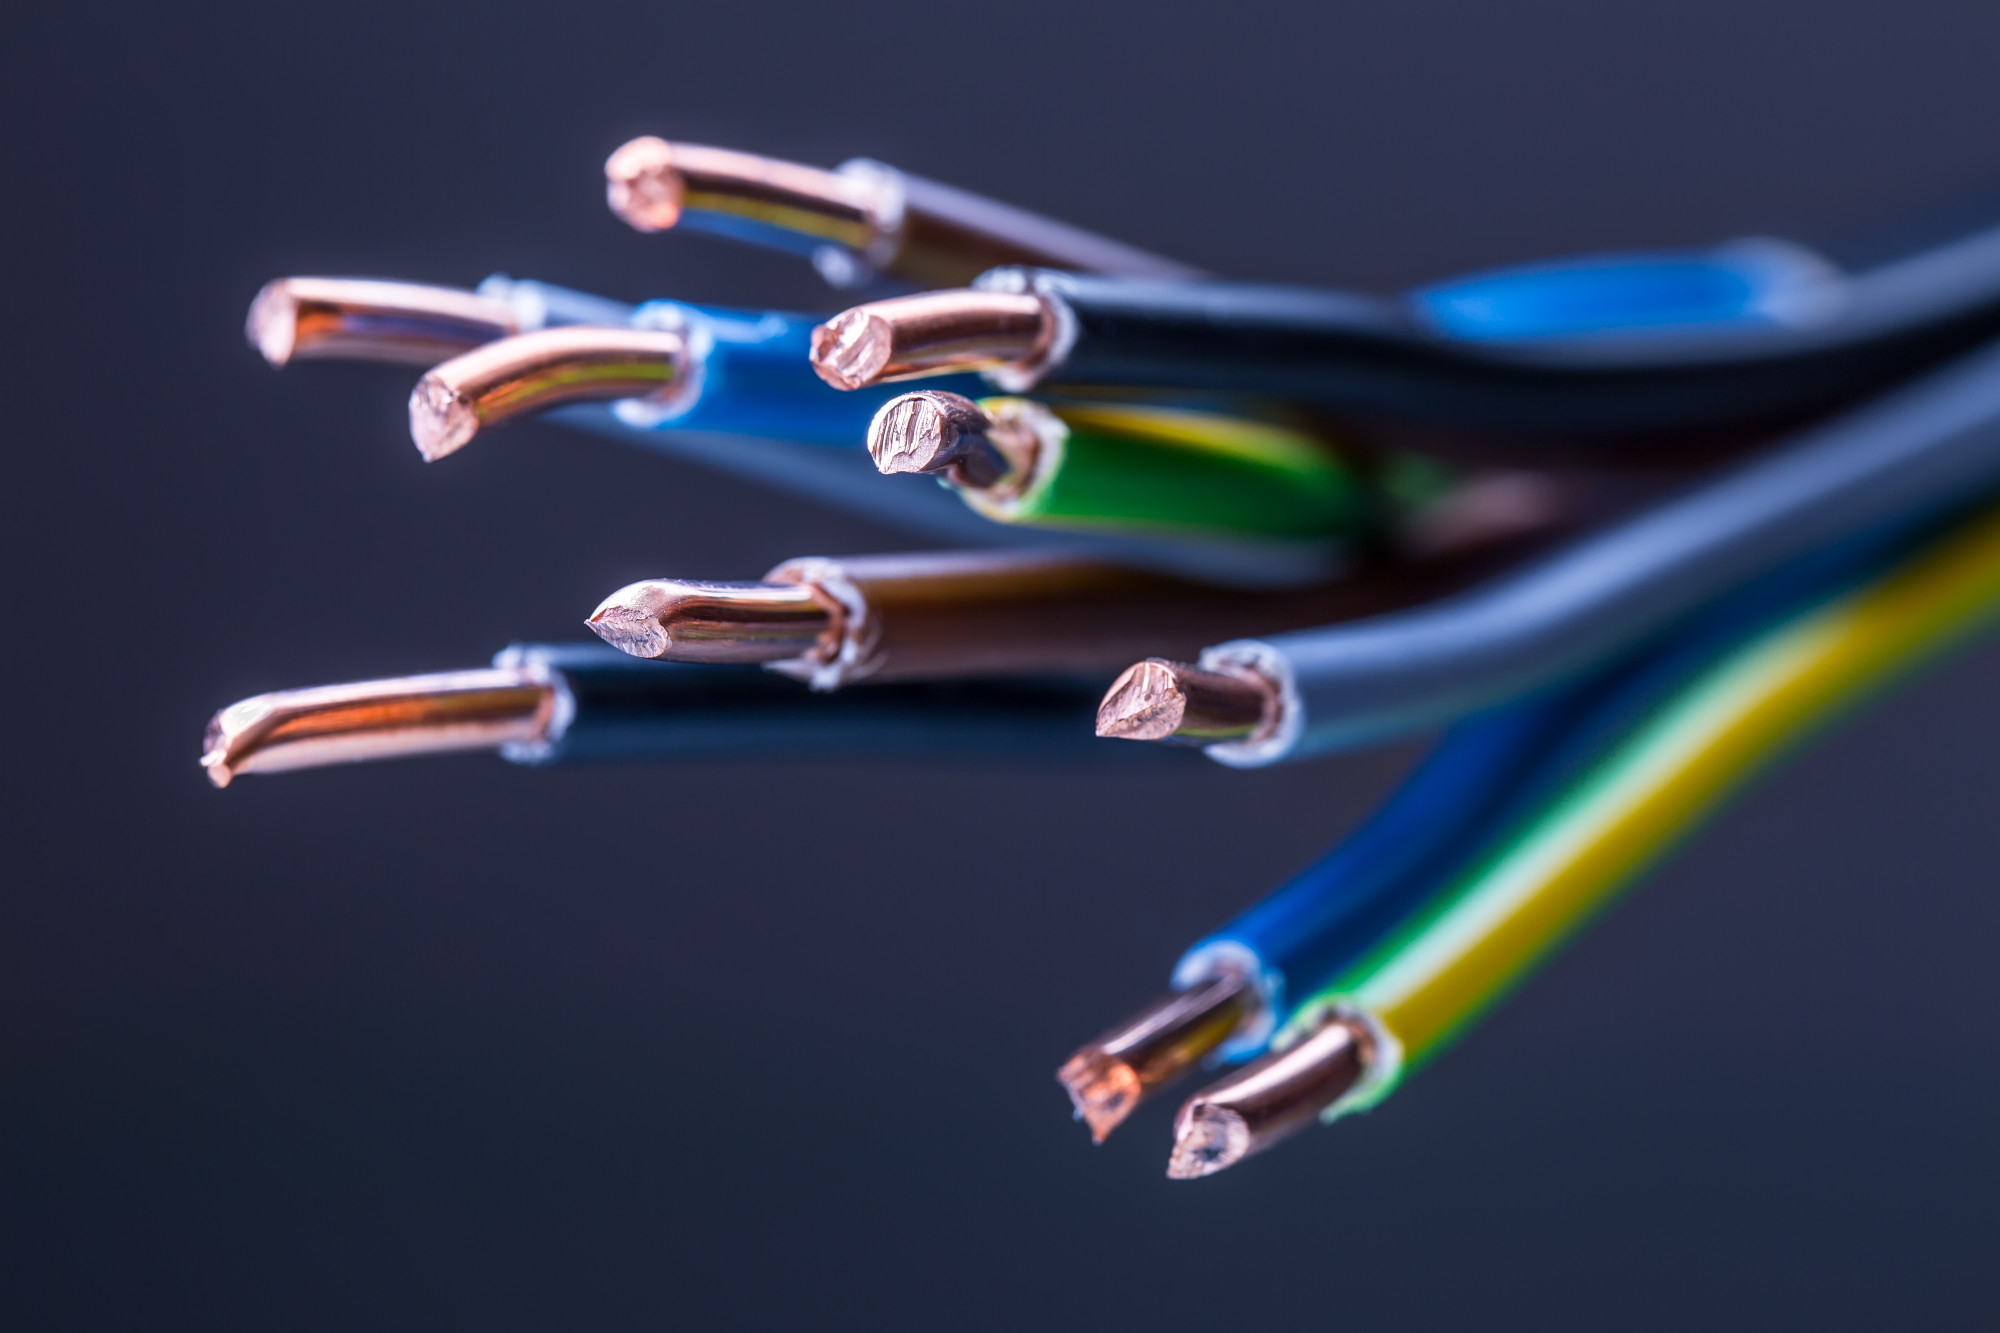 A Homeowner's Guide to Making Live Electrical Wires Safe